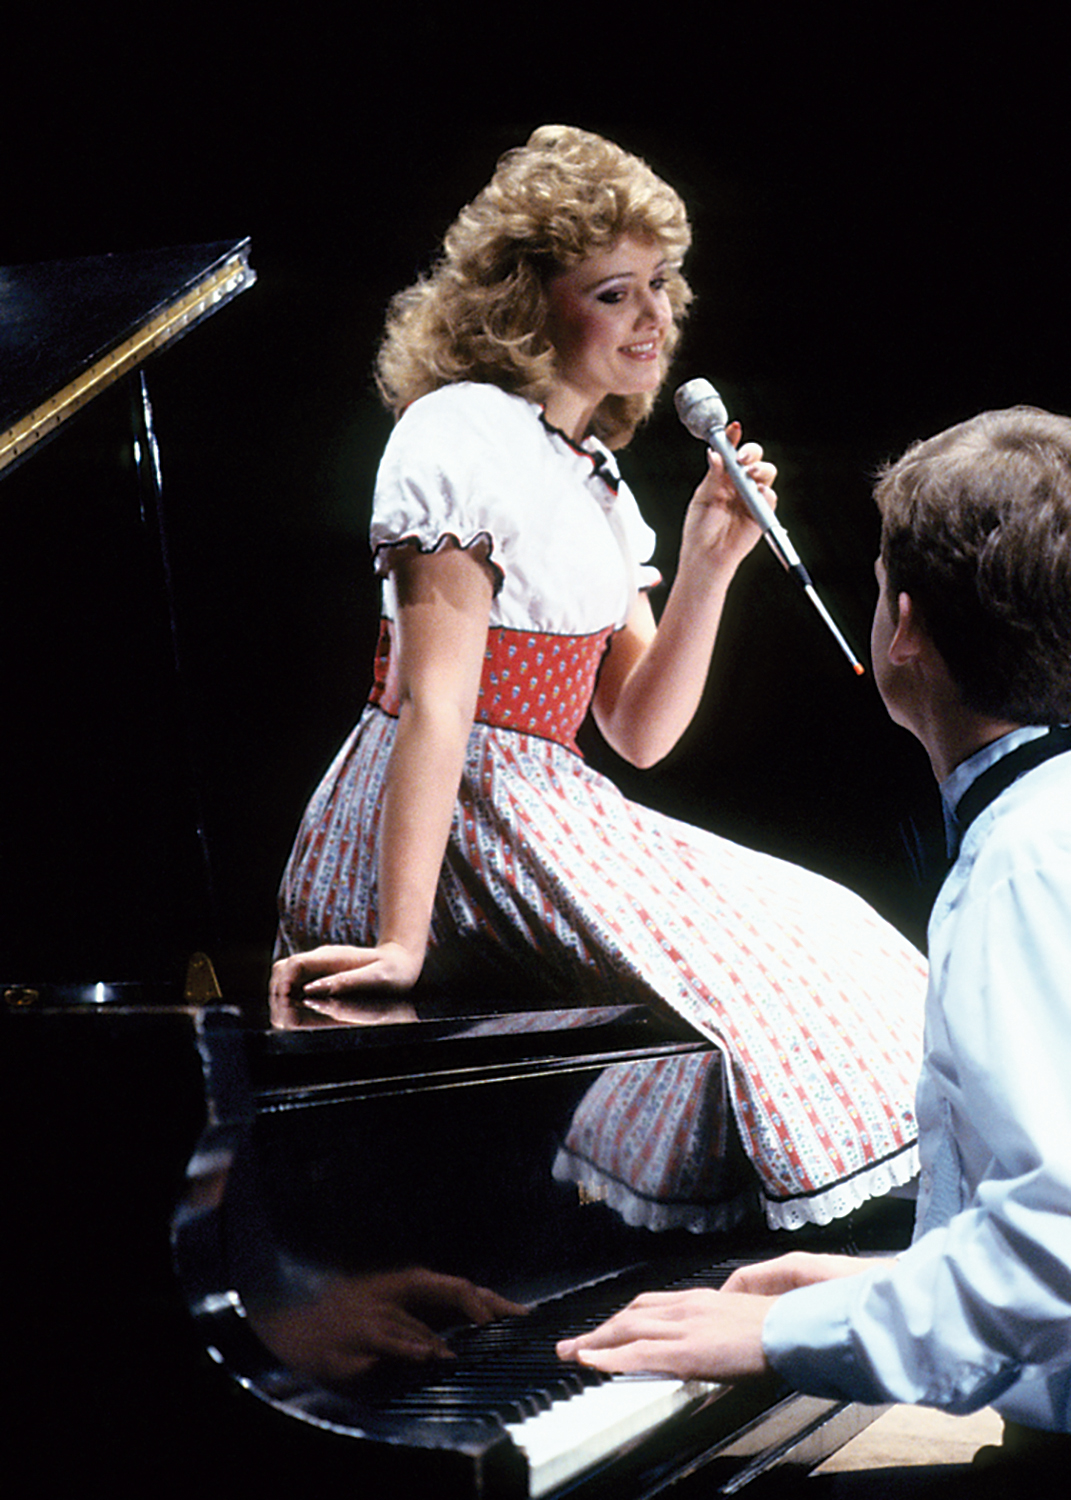 A woman sitting on the piano with a microphone in hand gazing at the man playing the piano.